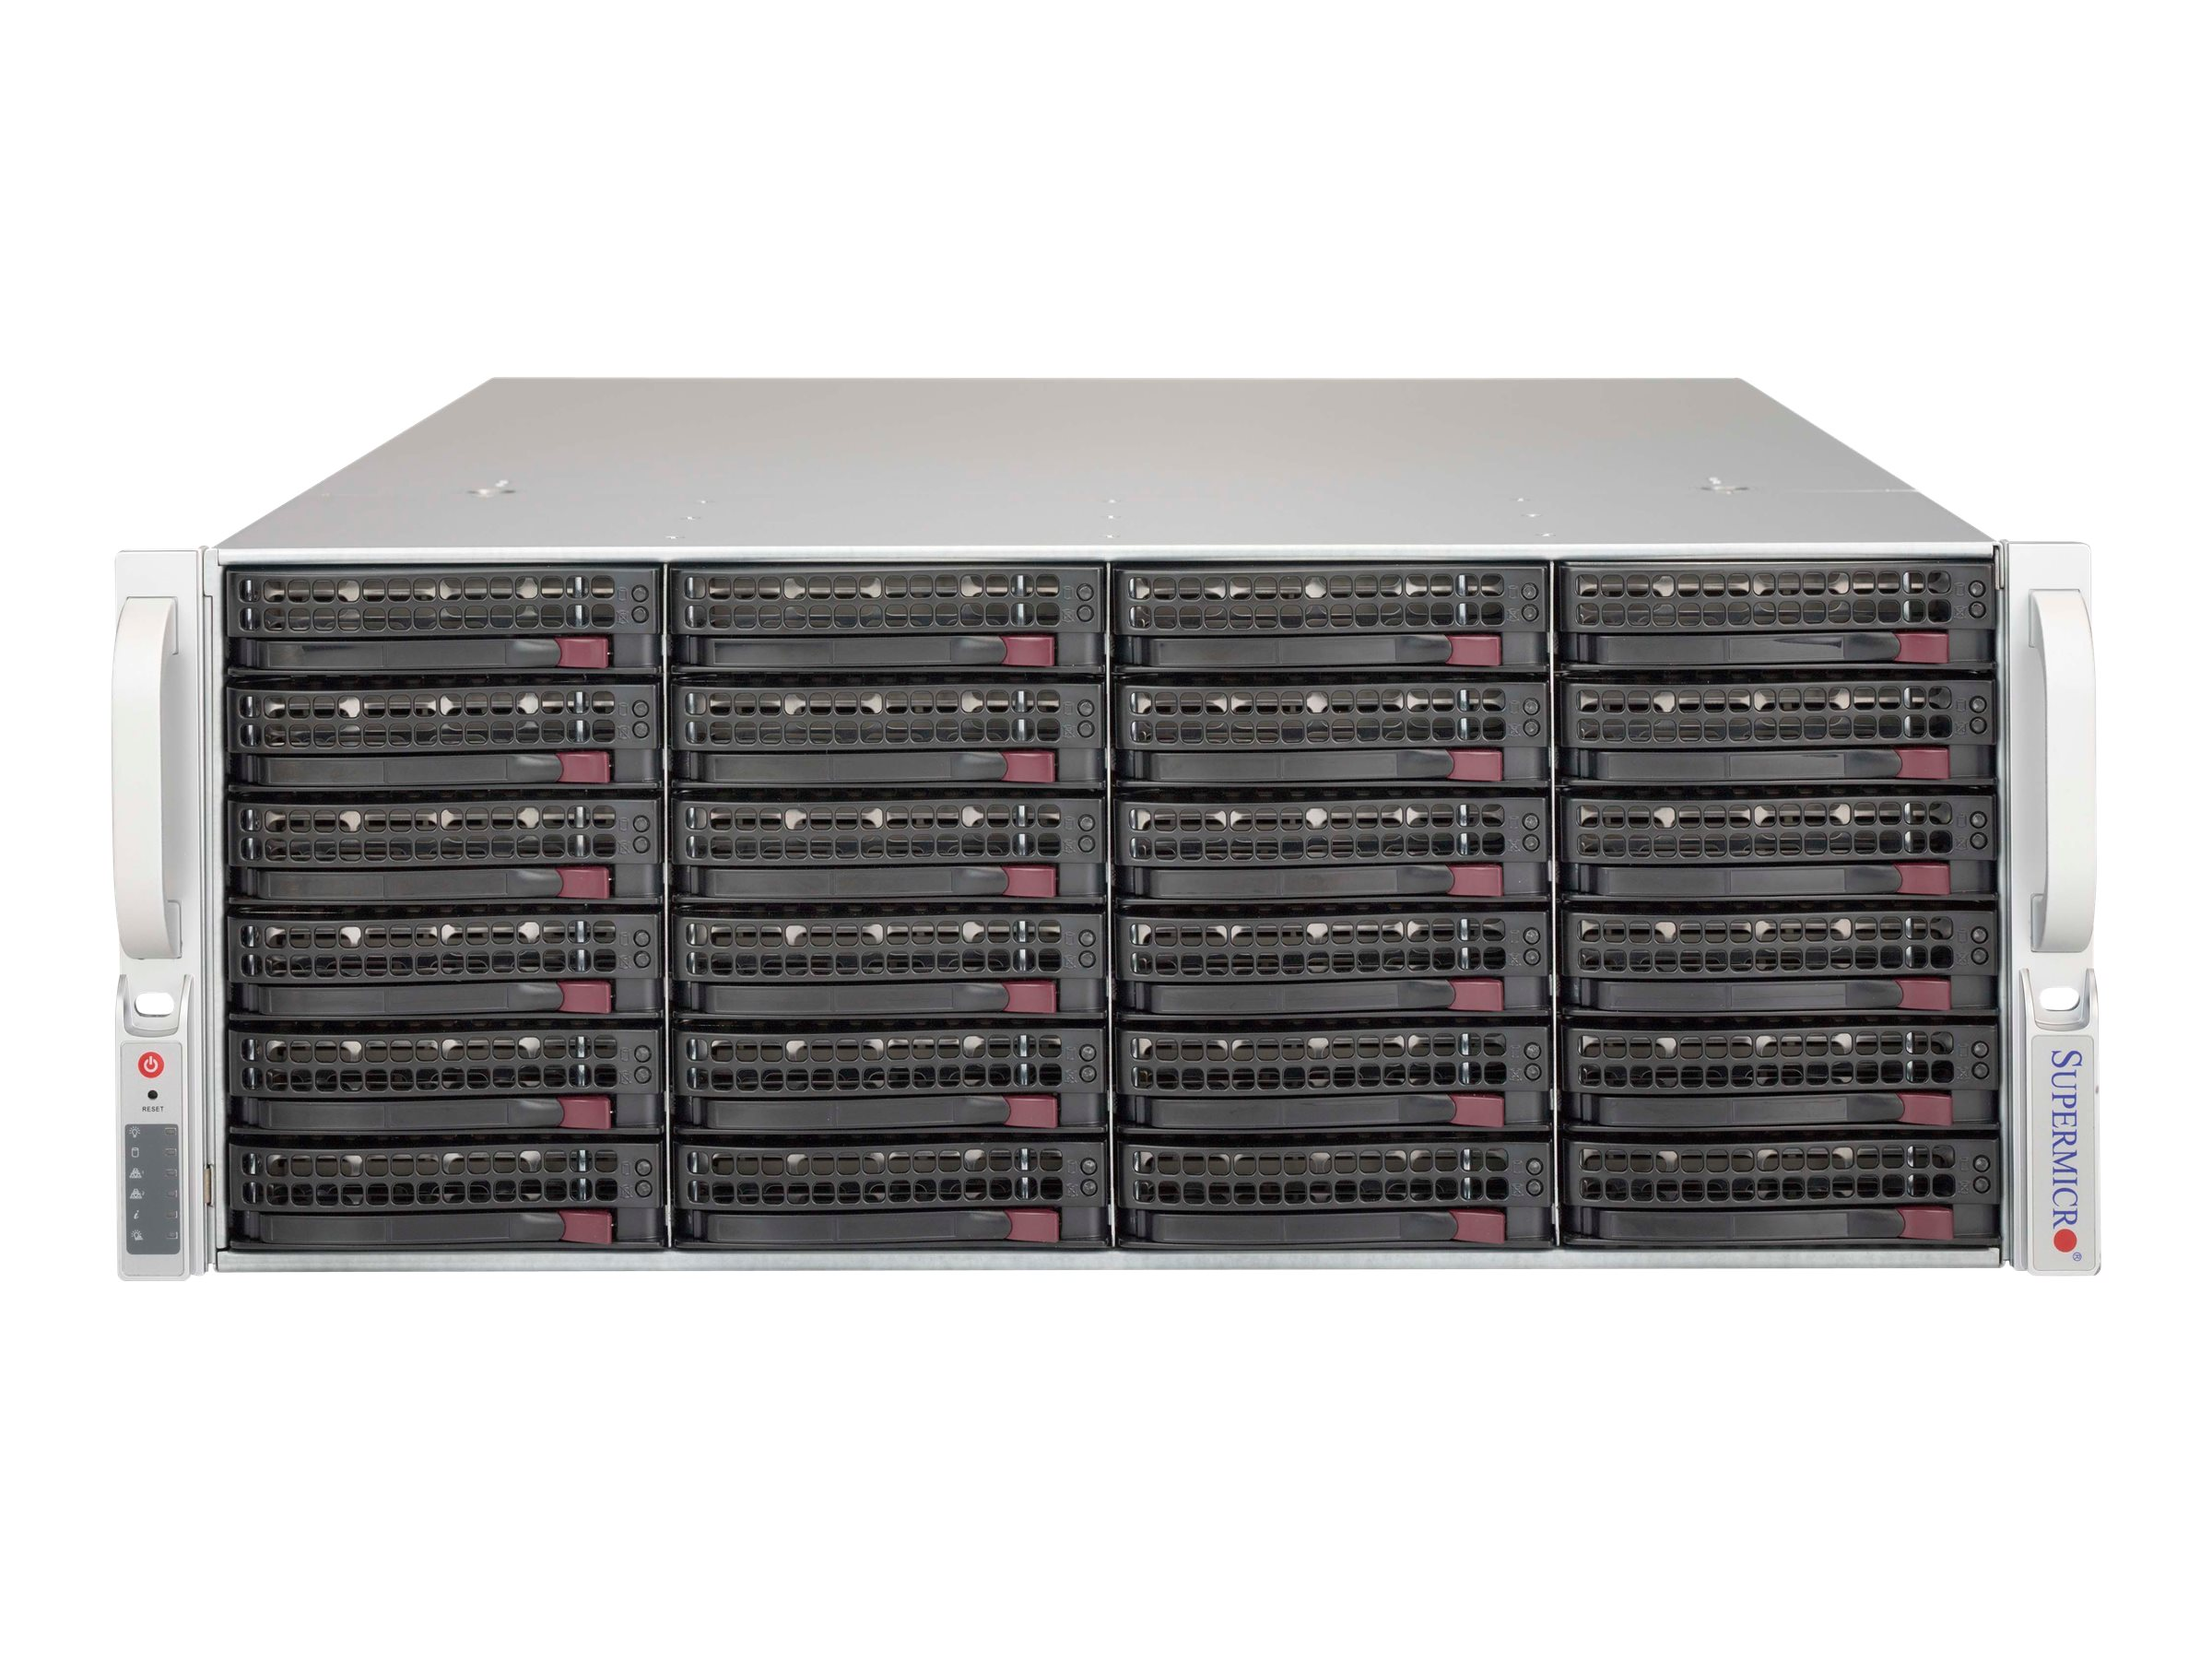 Supermicro Chassis, SuperChassis 846BE1C-R1K03JBOD 4U RM 24x3.5 HS Bays 2x1000W